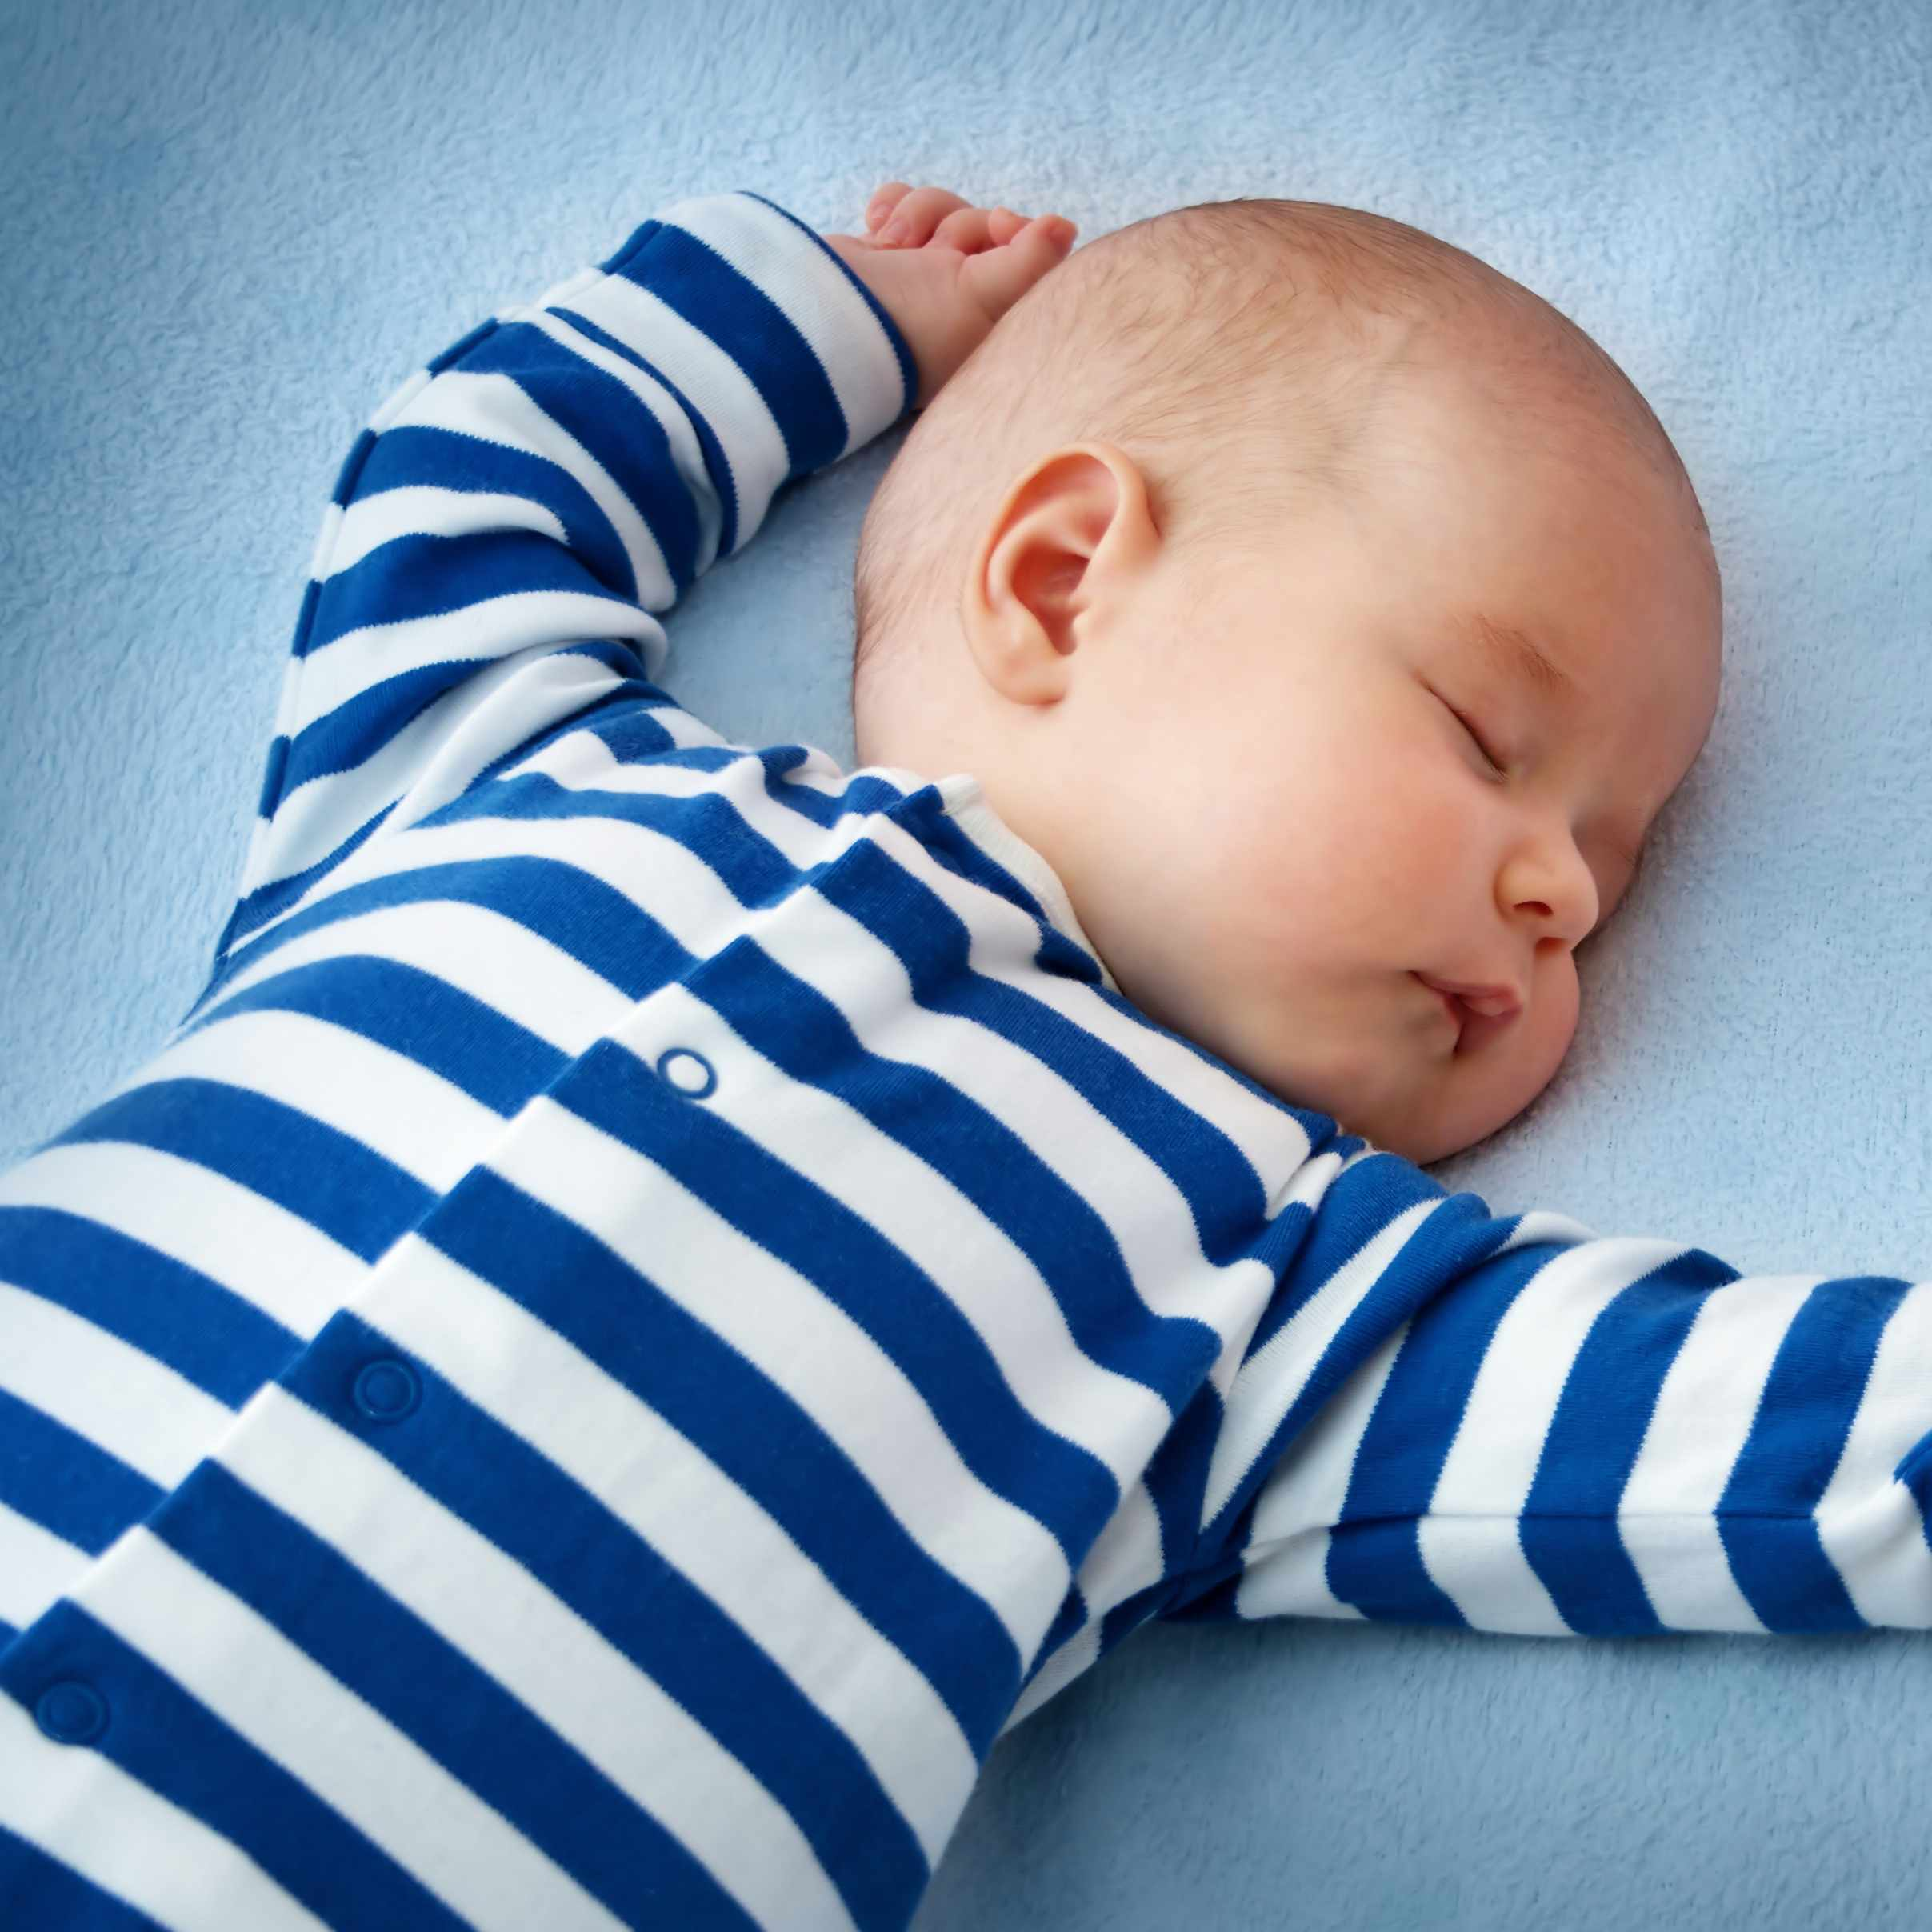 baby sleeping on his back in a crib with blue sheets